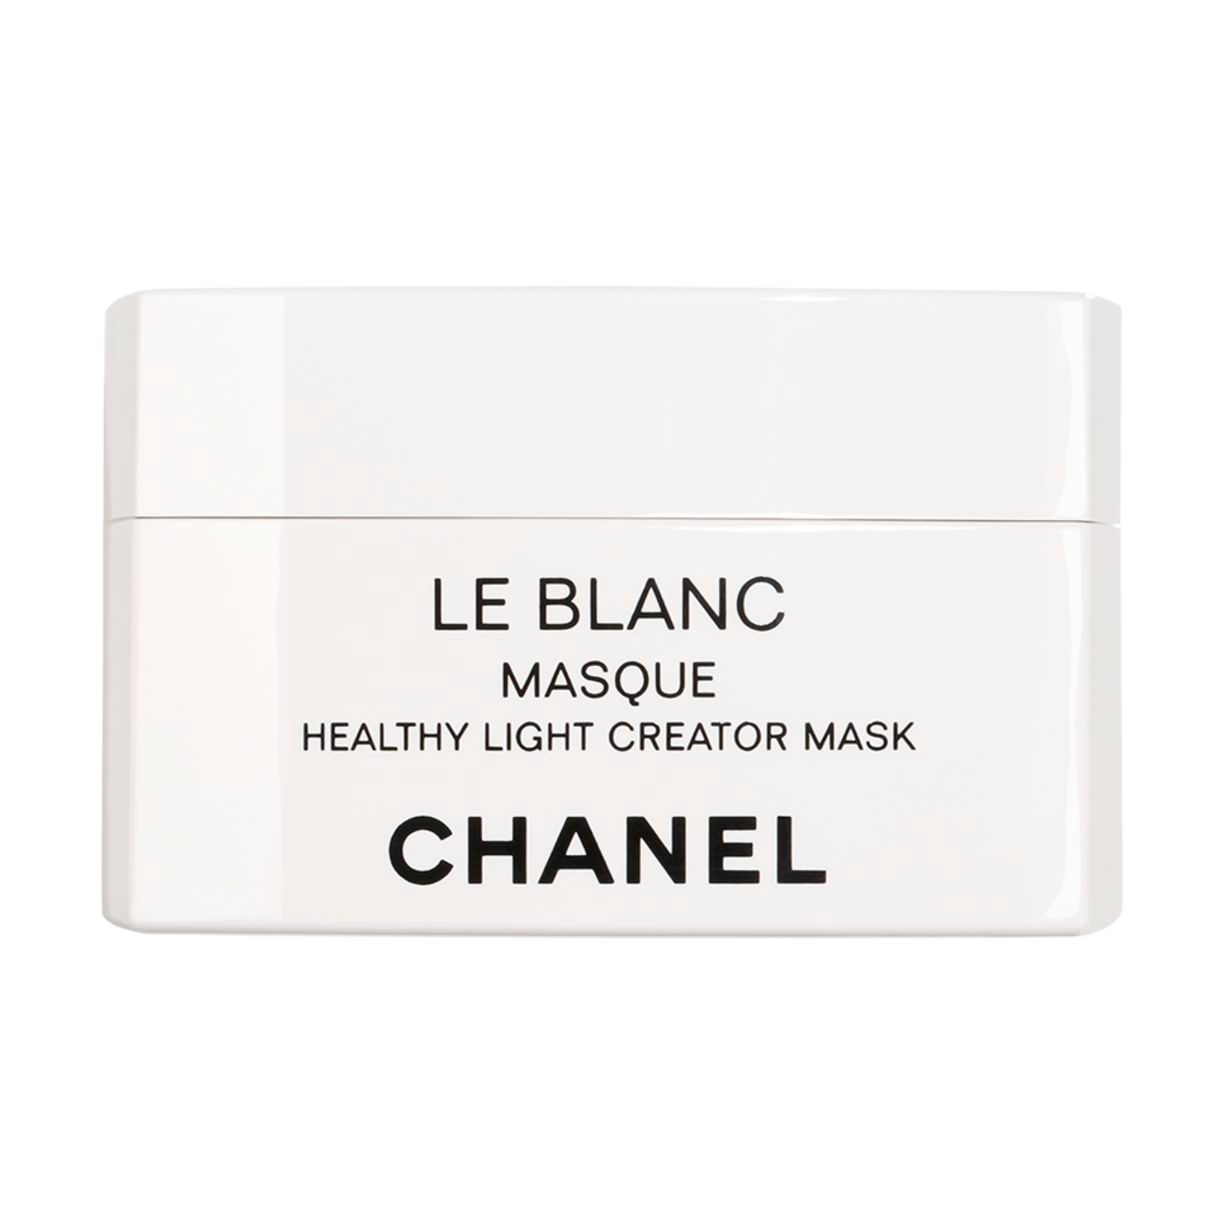 LE BLANC MASQUE HEALTHY LIGHT CREATOR MASK REVITALISANT - ILLUMINATEUR - RÉPARATEUR